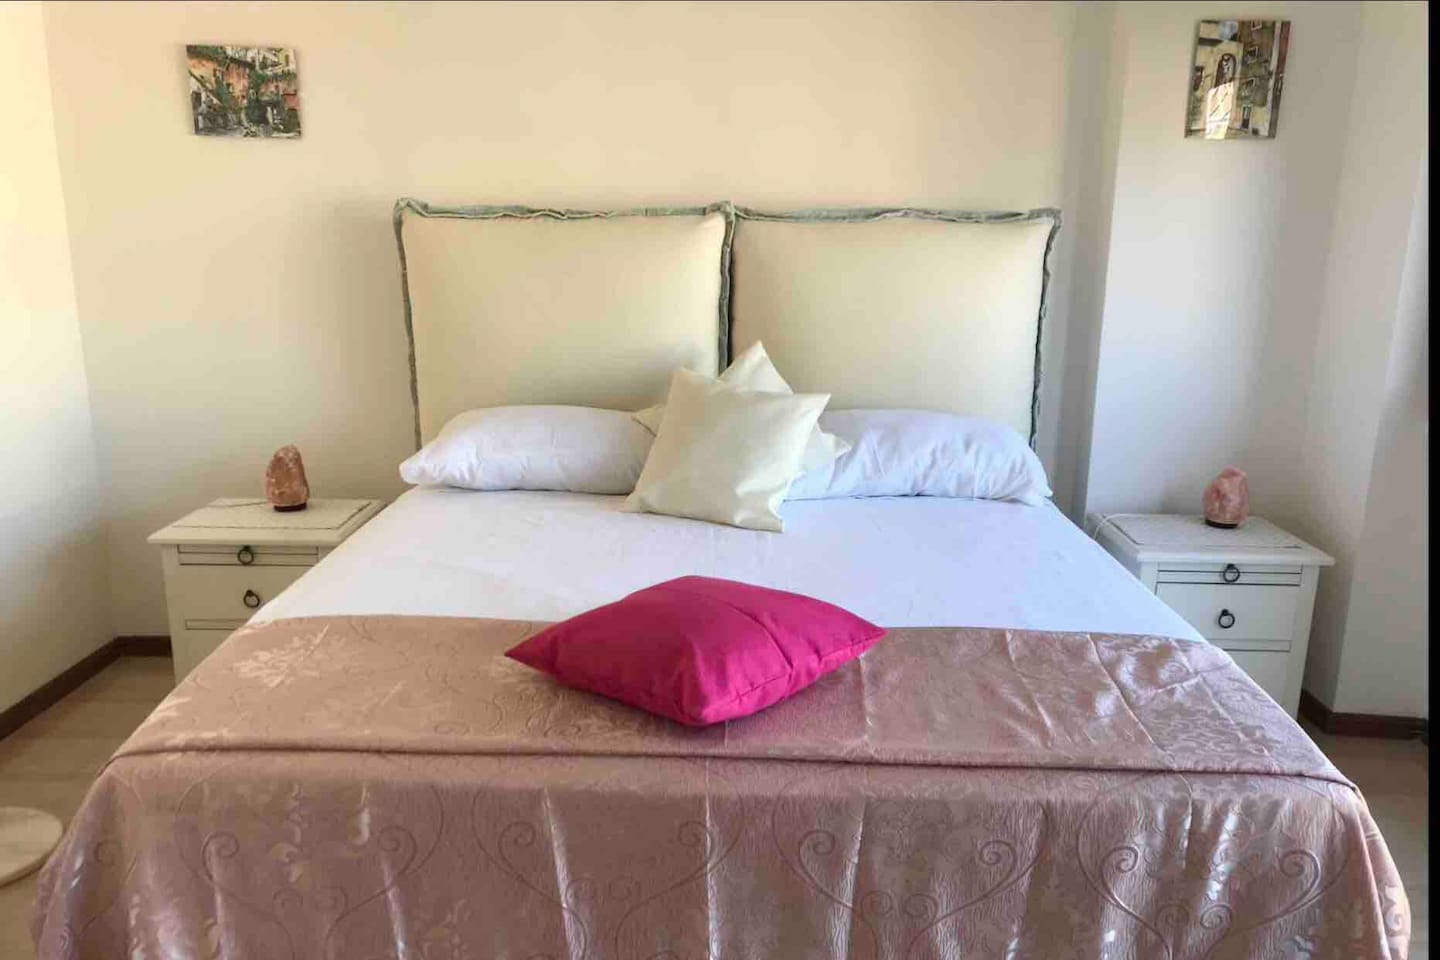 Queen size bed with memory foam mattress to ensure you comfort. Clean linen, pillows, blankets. Bedside tables with Himalayan salt lamps. Air conditioning, Smart Tv, Wardrobe and chest of drawers.